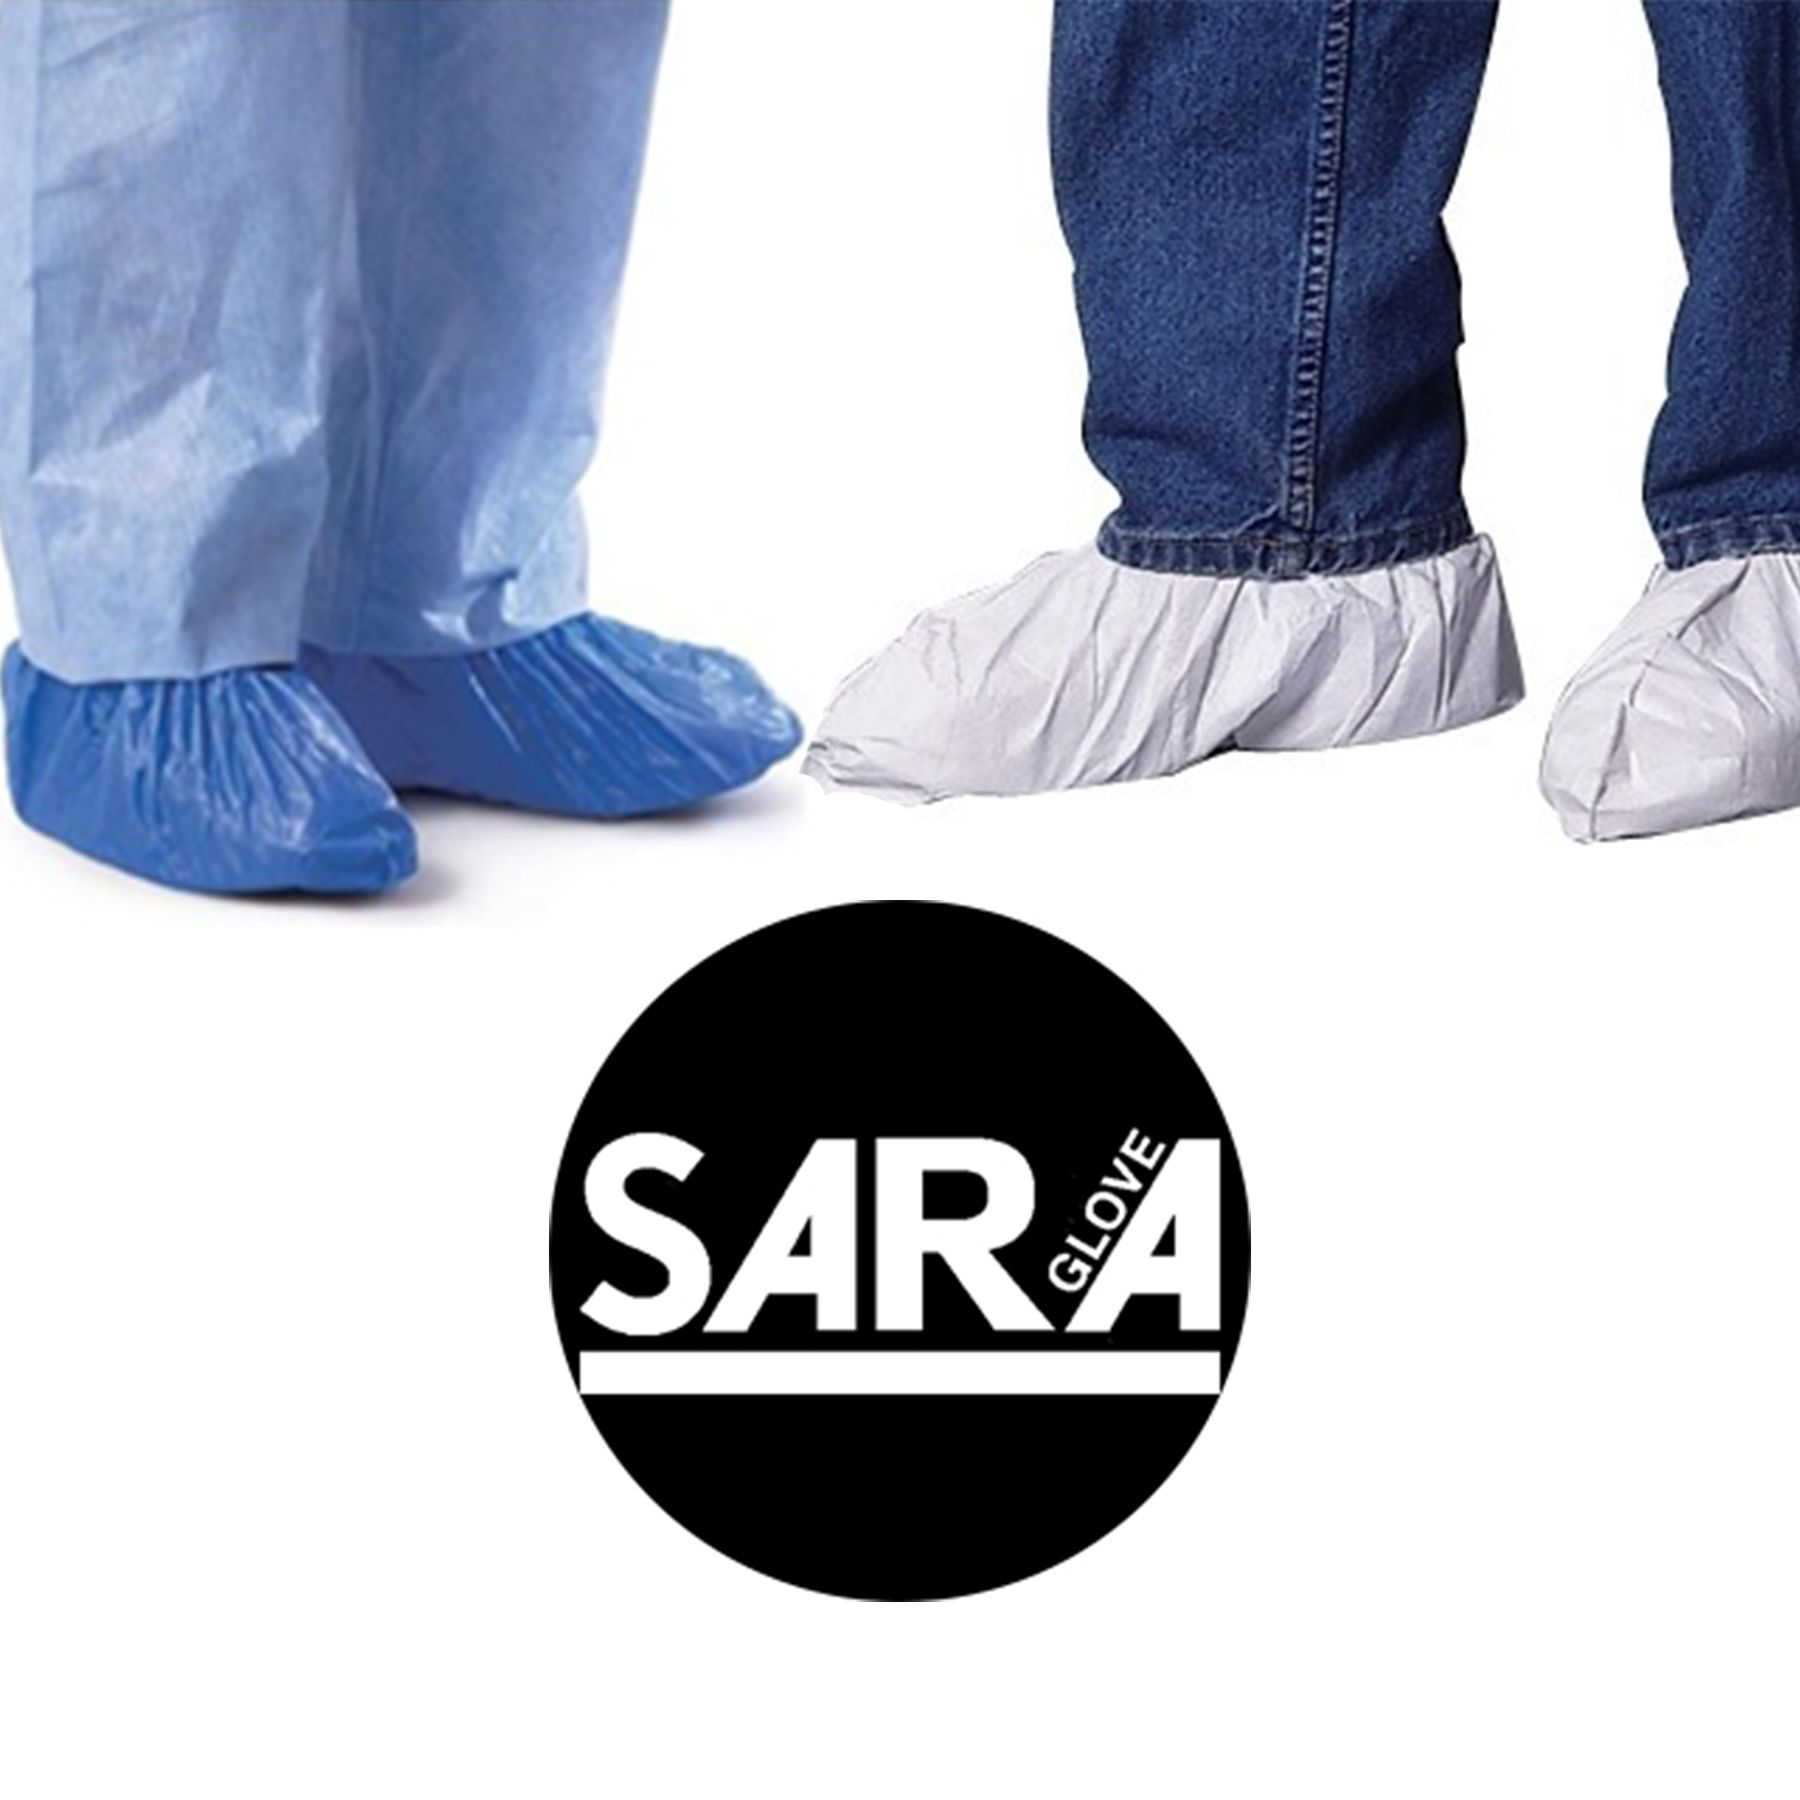 Disposable shoe and boot covers in blue, white, clear, and